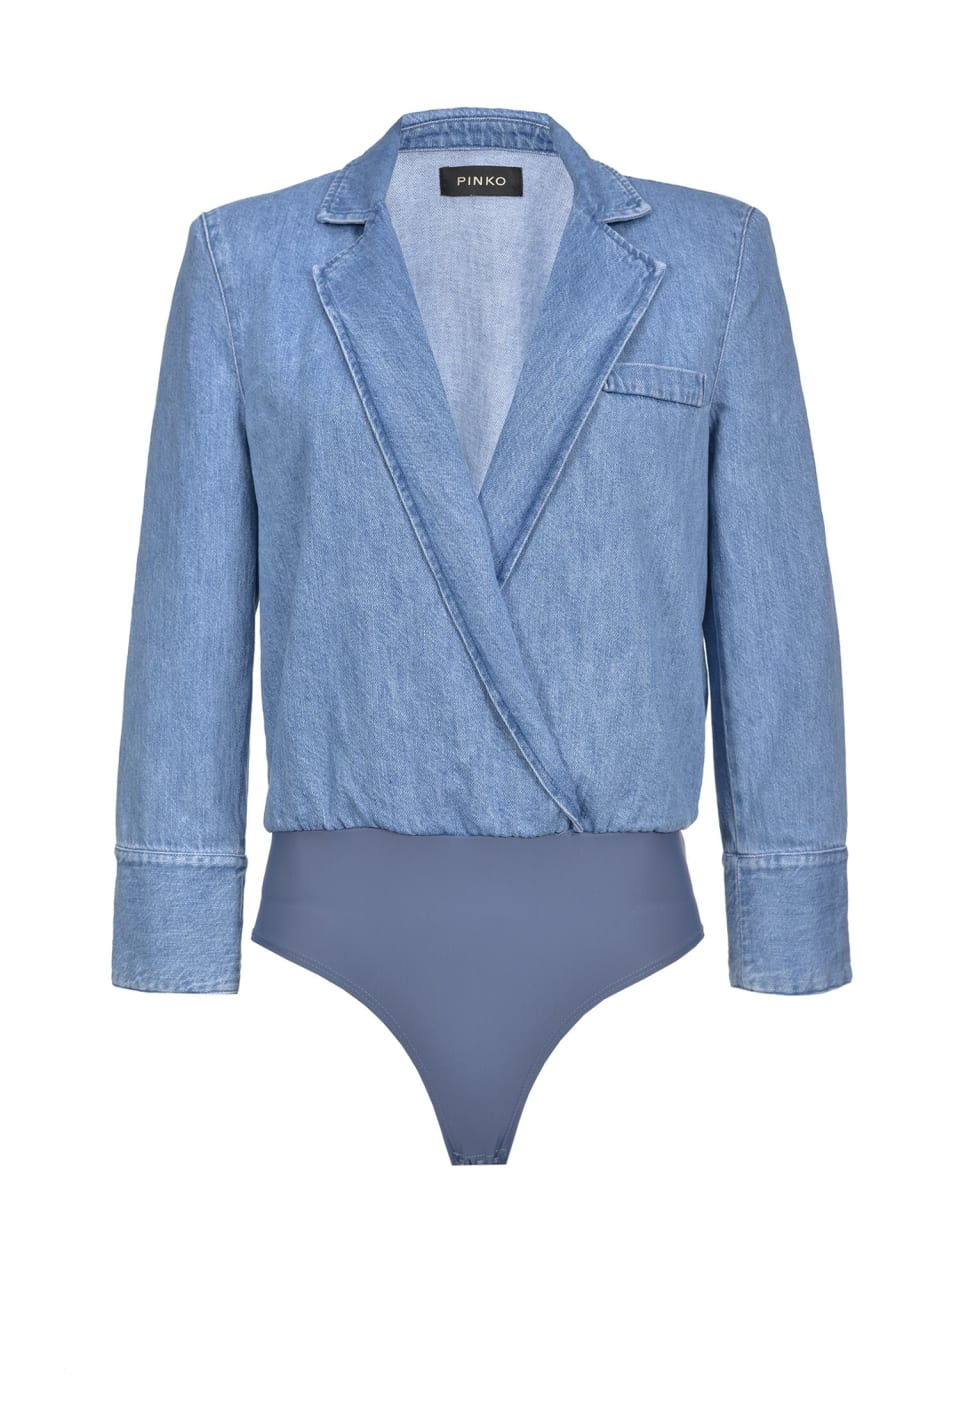 Chaqueta tipo body de denim